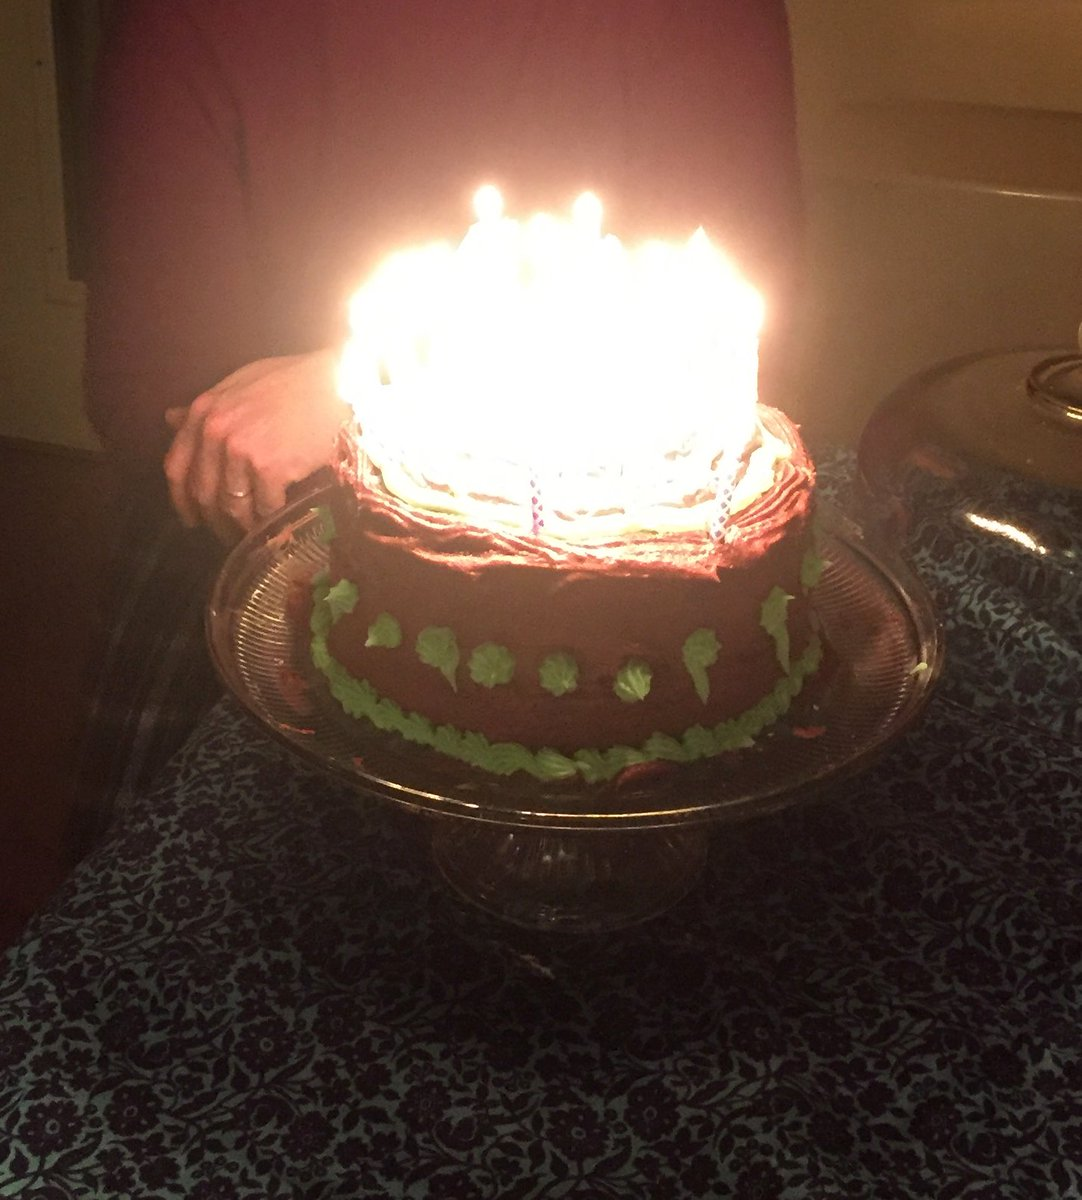 Eowyn Ivey On Twitter The Forest Fire That Was My Birthday Cake